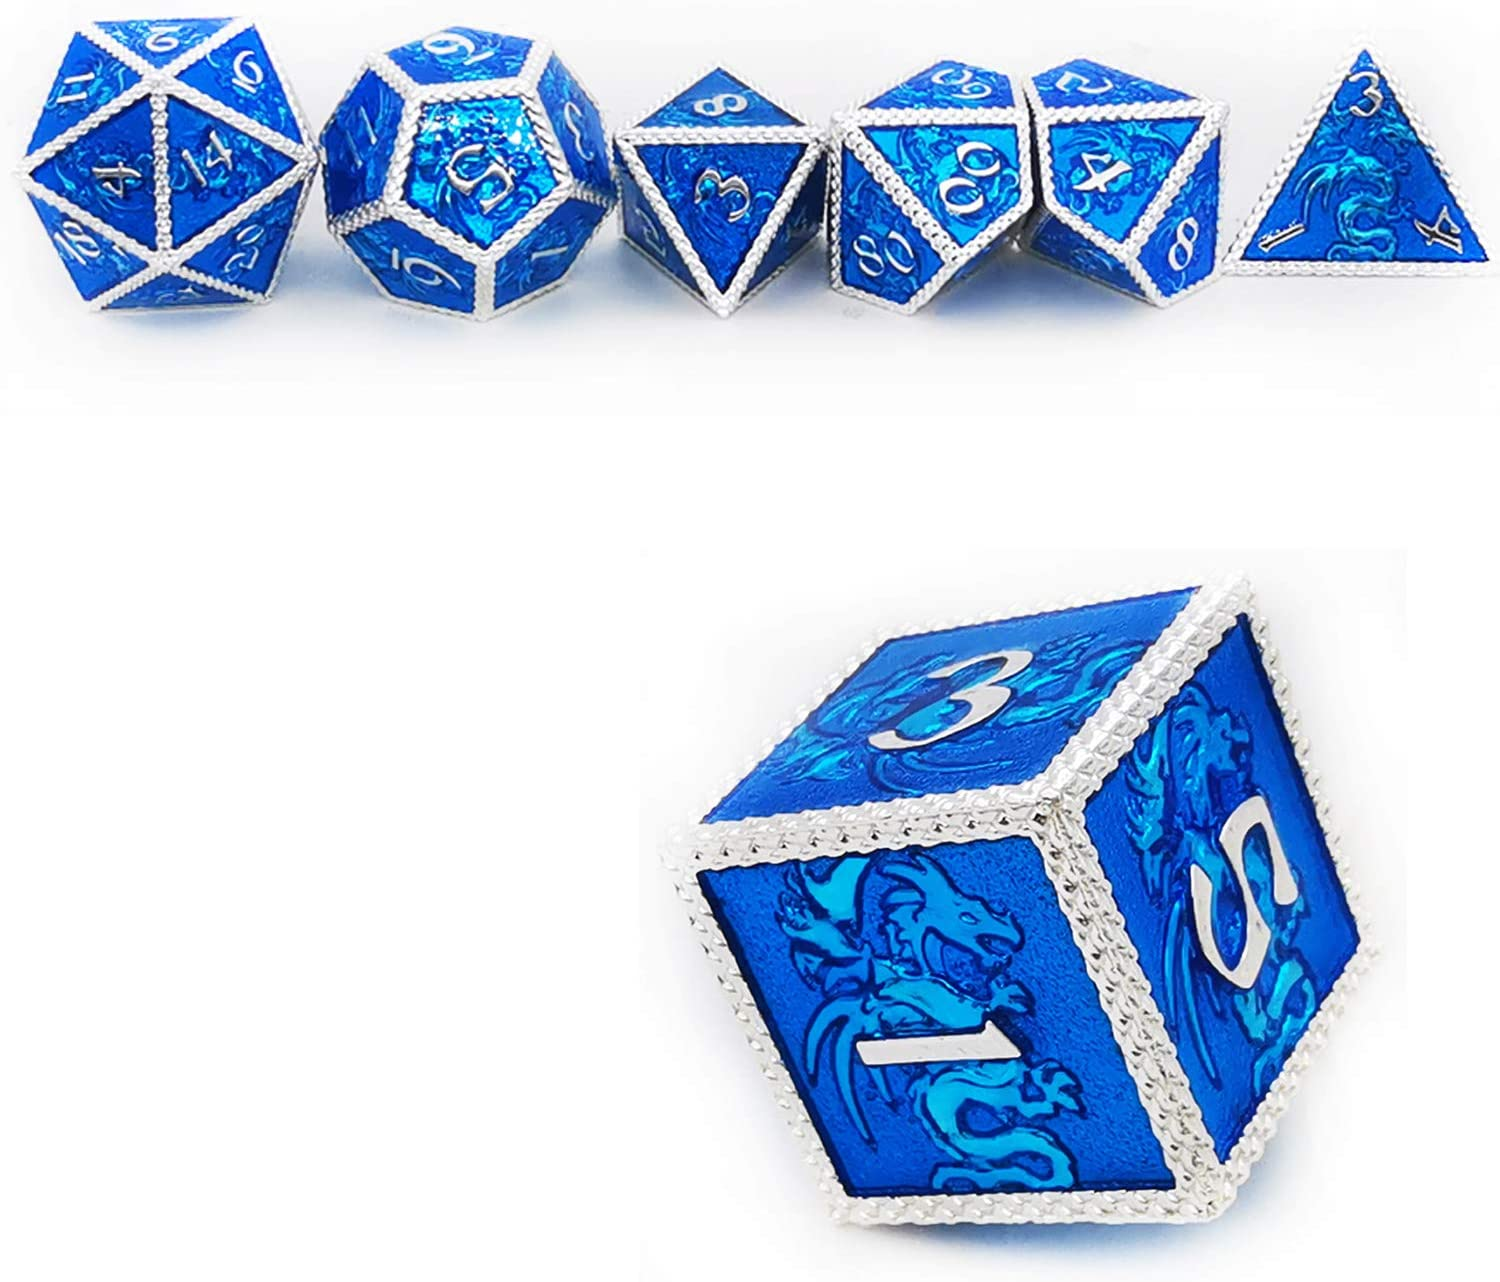 HAOMEJA DND Metal Dice Dragon Set 7 Role Playing Dice D/&D Solid Dice Dungeons and Dragons Silver Blue